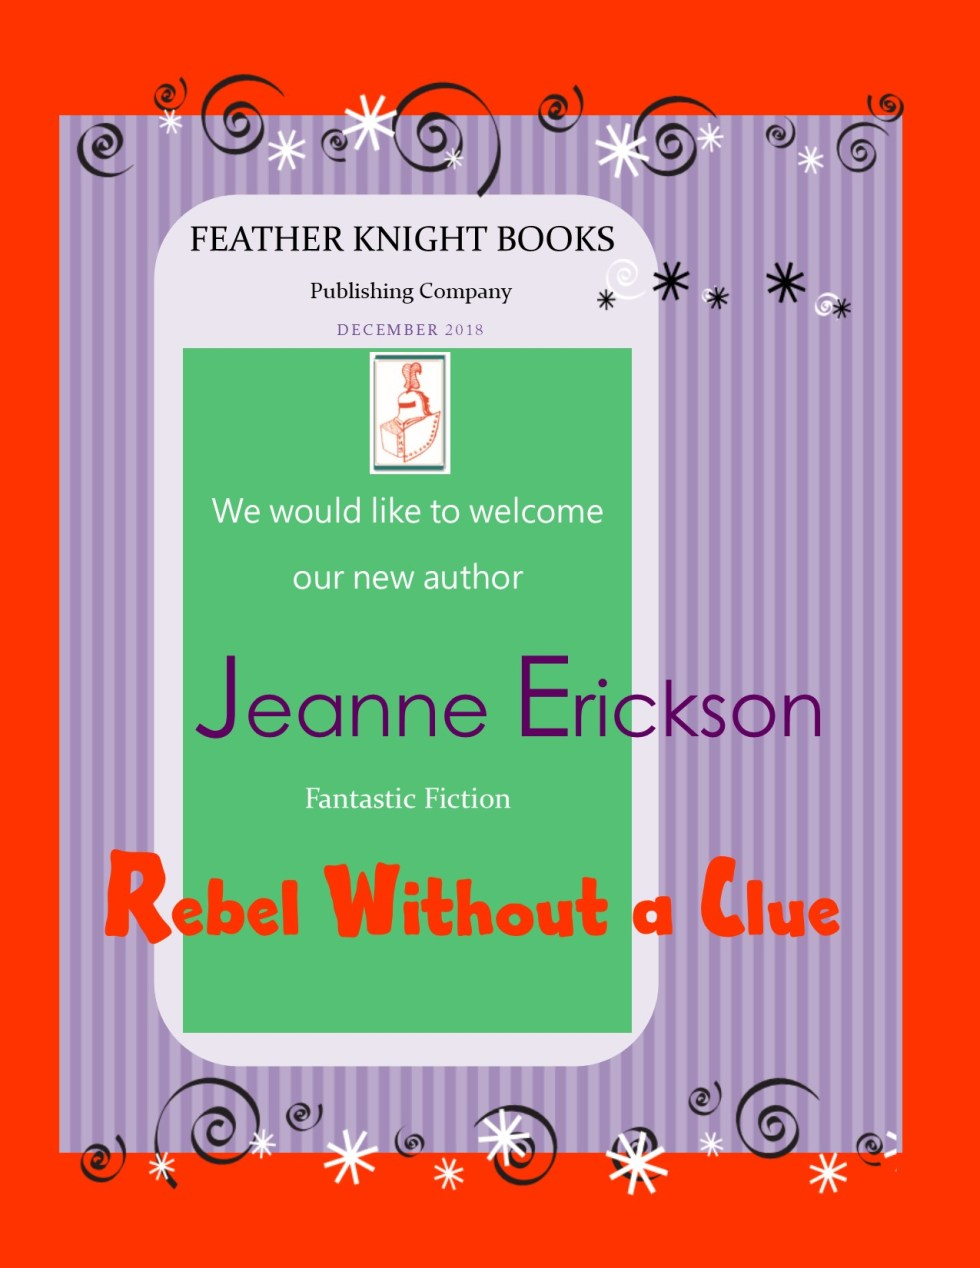 Jeanne Erickson, New York Editor Newyork Examiner, author of Rebel without a clue, coming soon to Feather Knight Books 2019, Top Fiction.